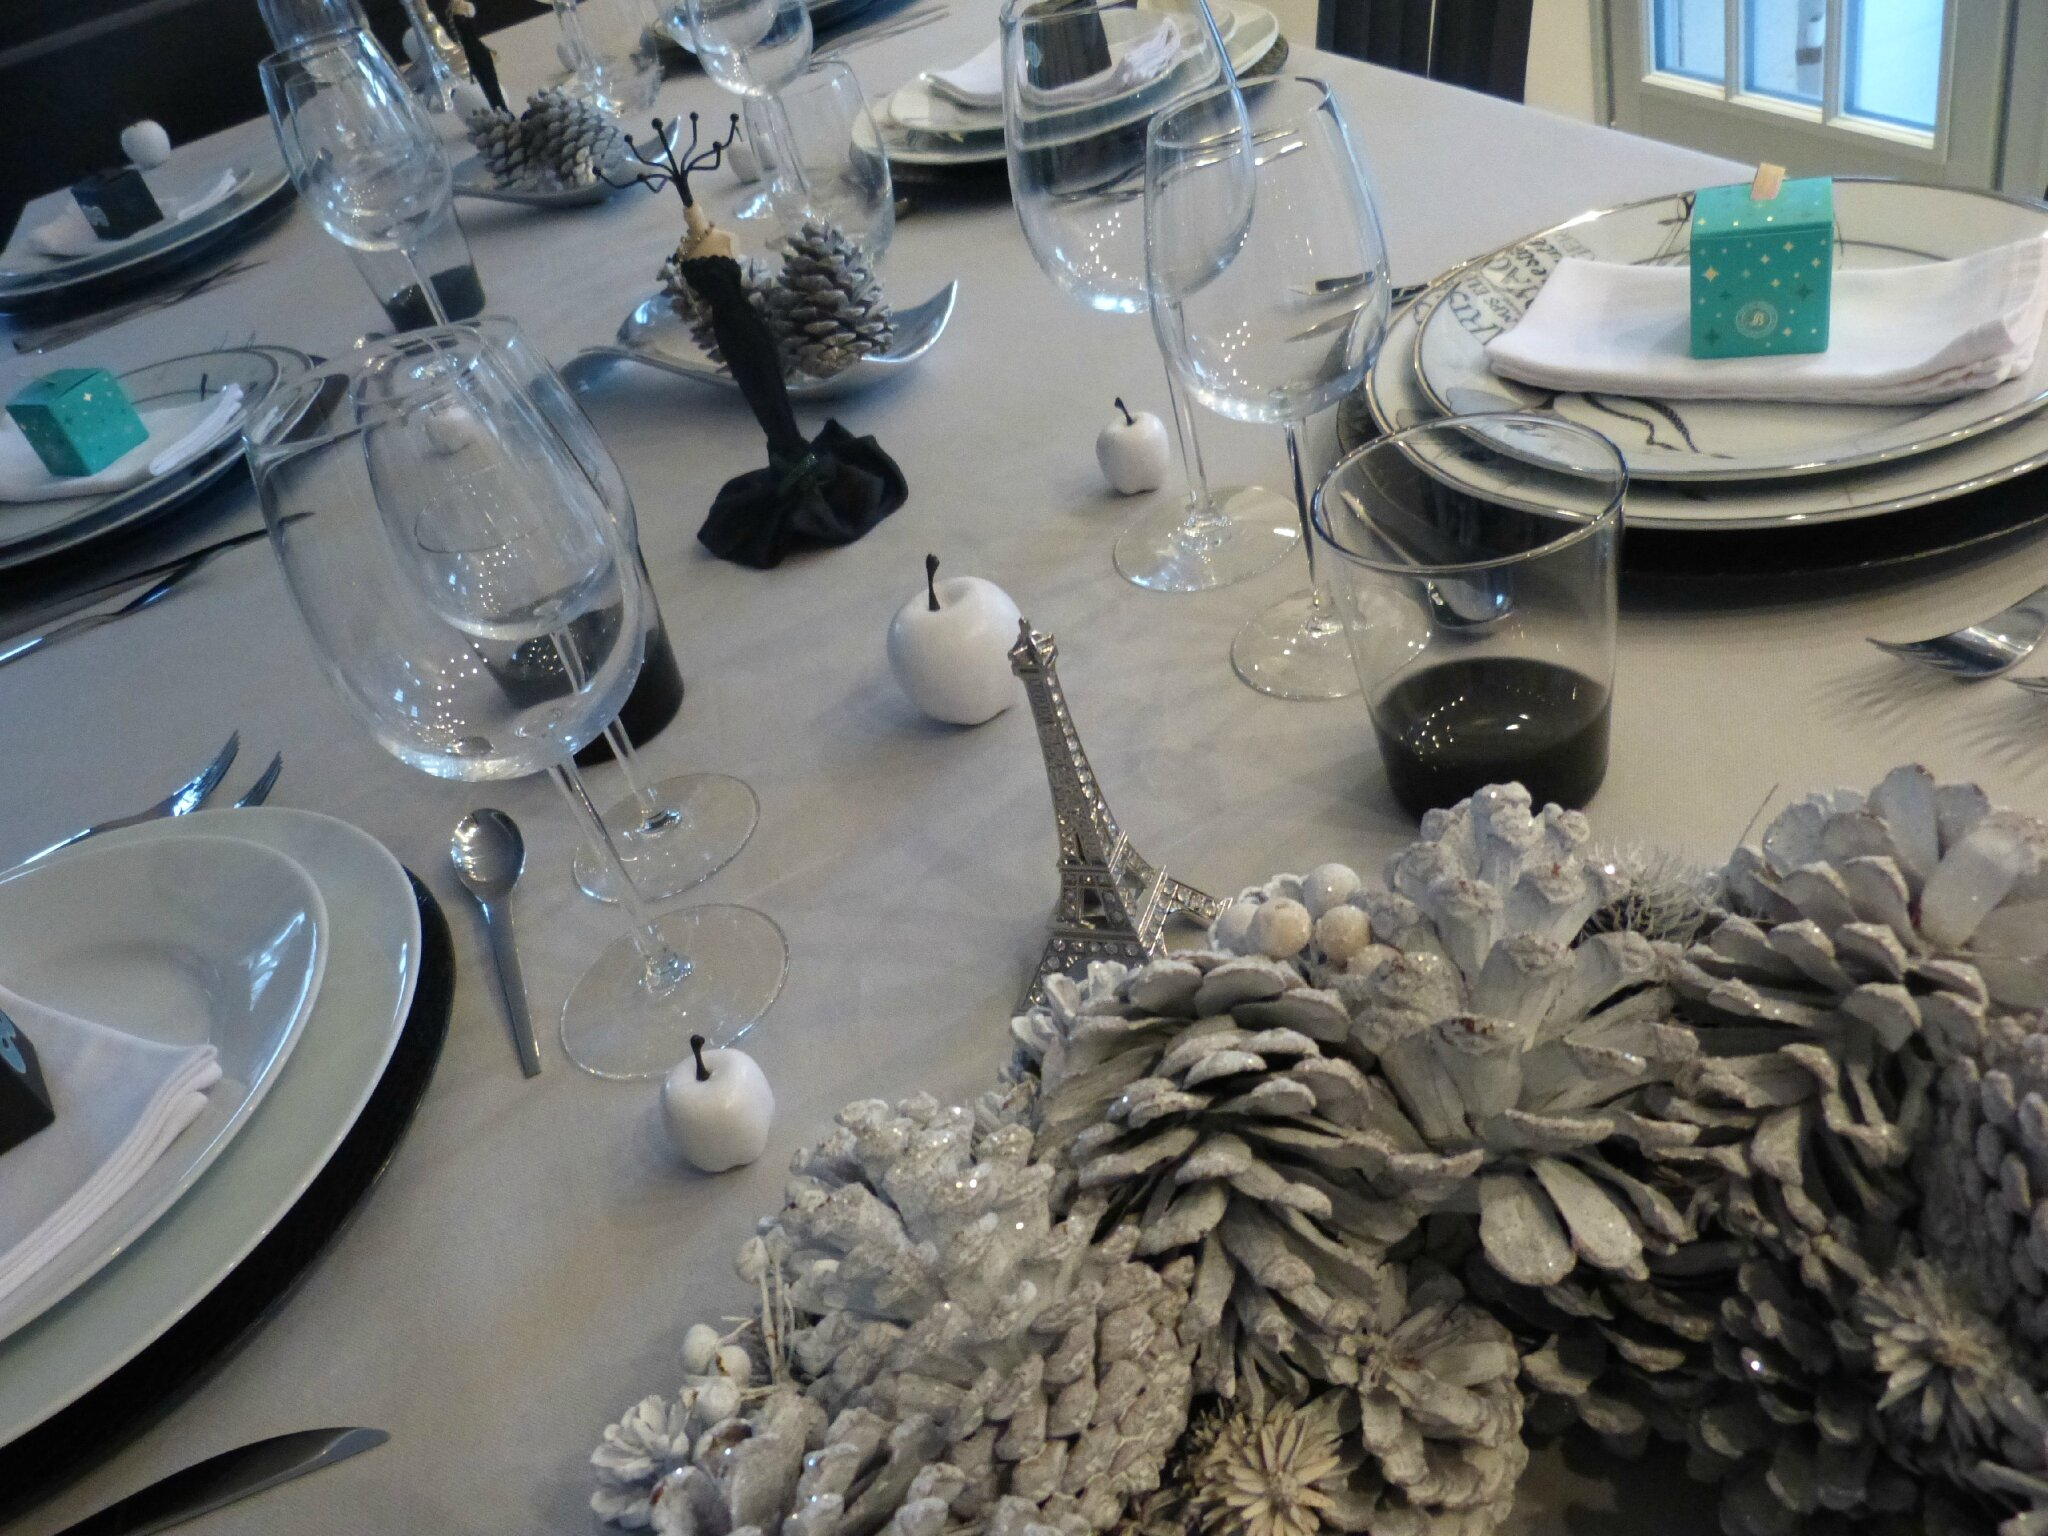 Table r veillon st sylvestre 2014 sous le ciel de - Table reveillon saint sylvestre ...